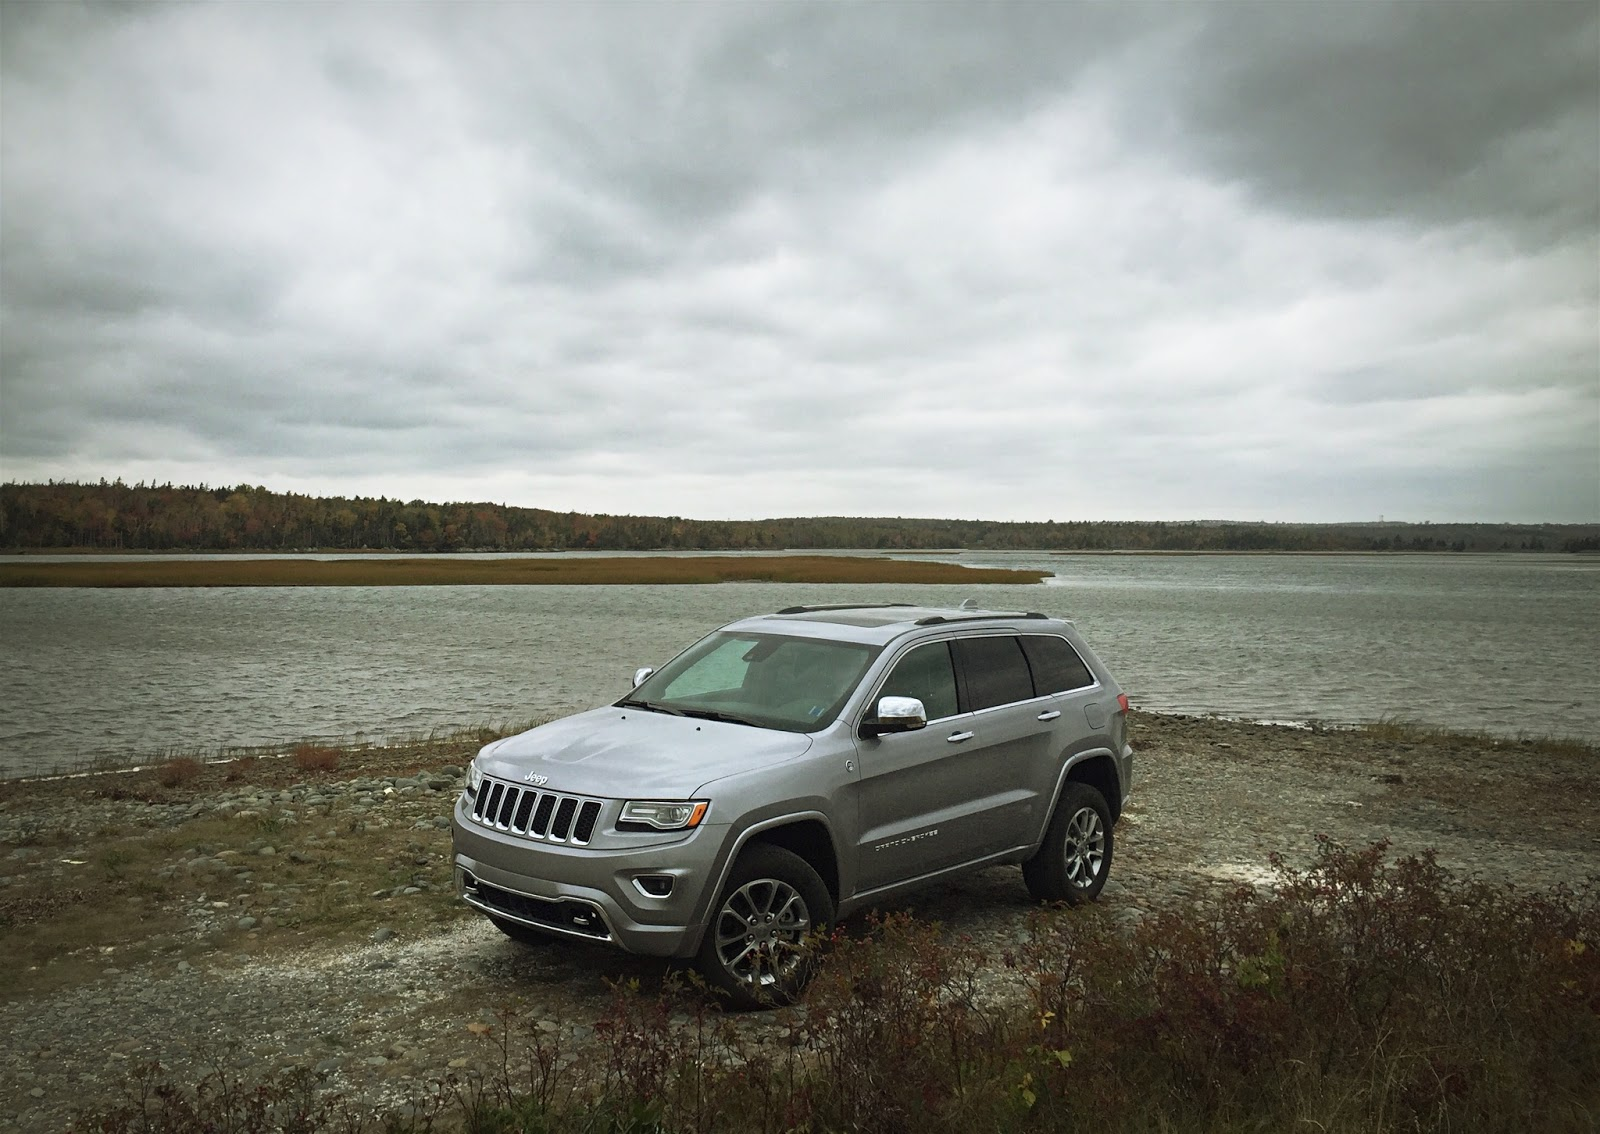 2015 Jeep Grand Cherokee EcoDiesel Overland 4×4 Review – An